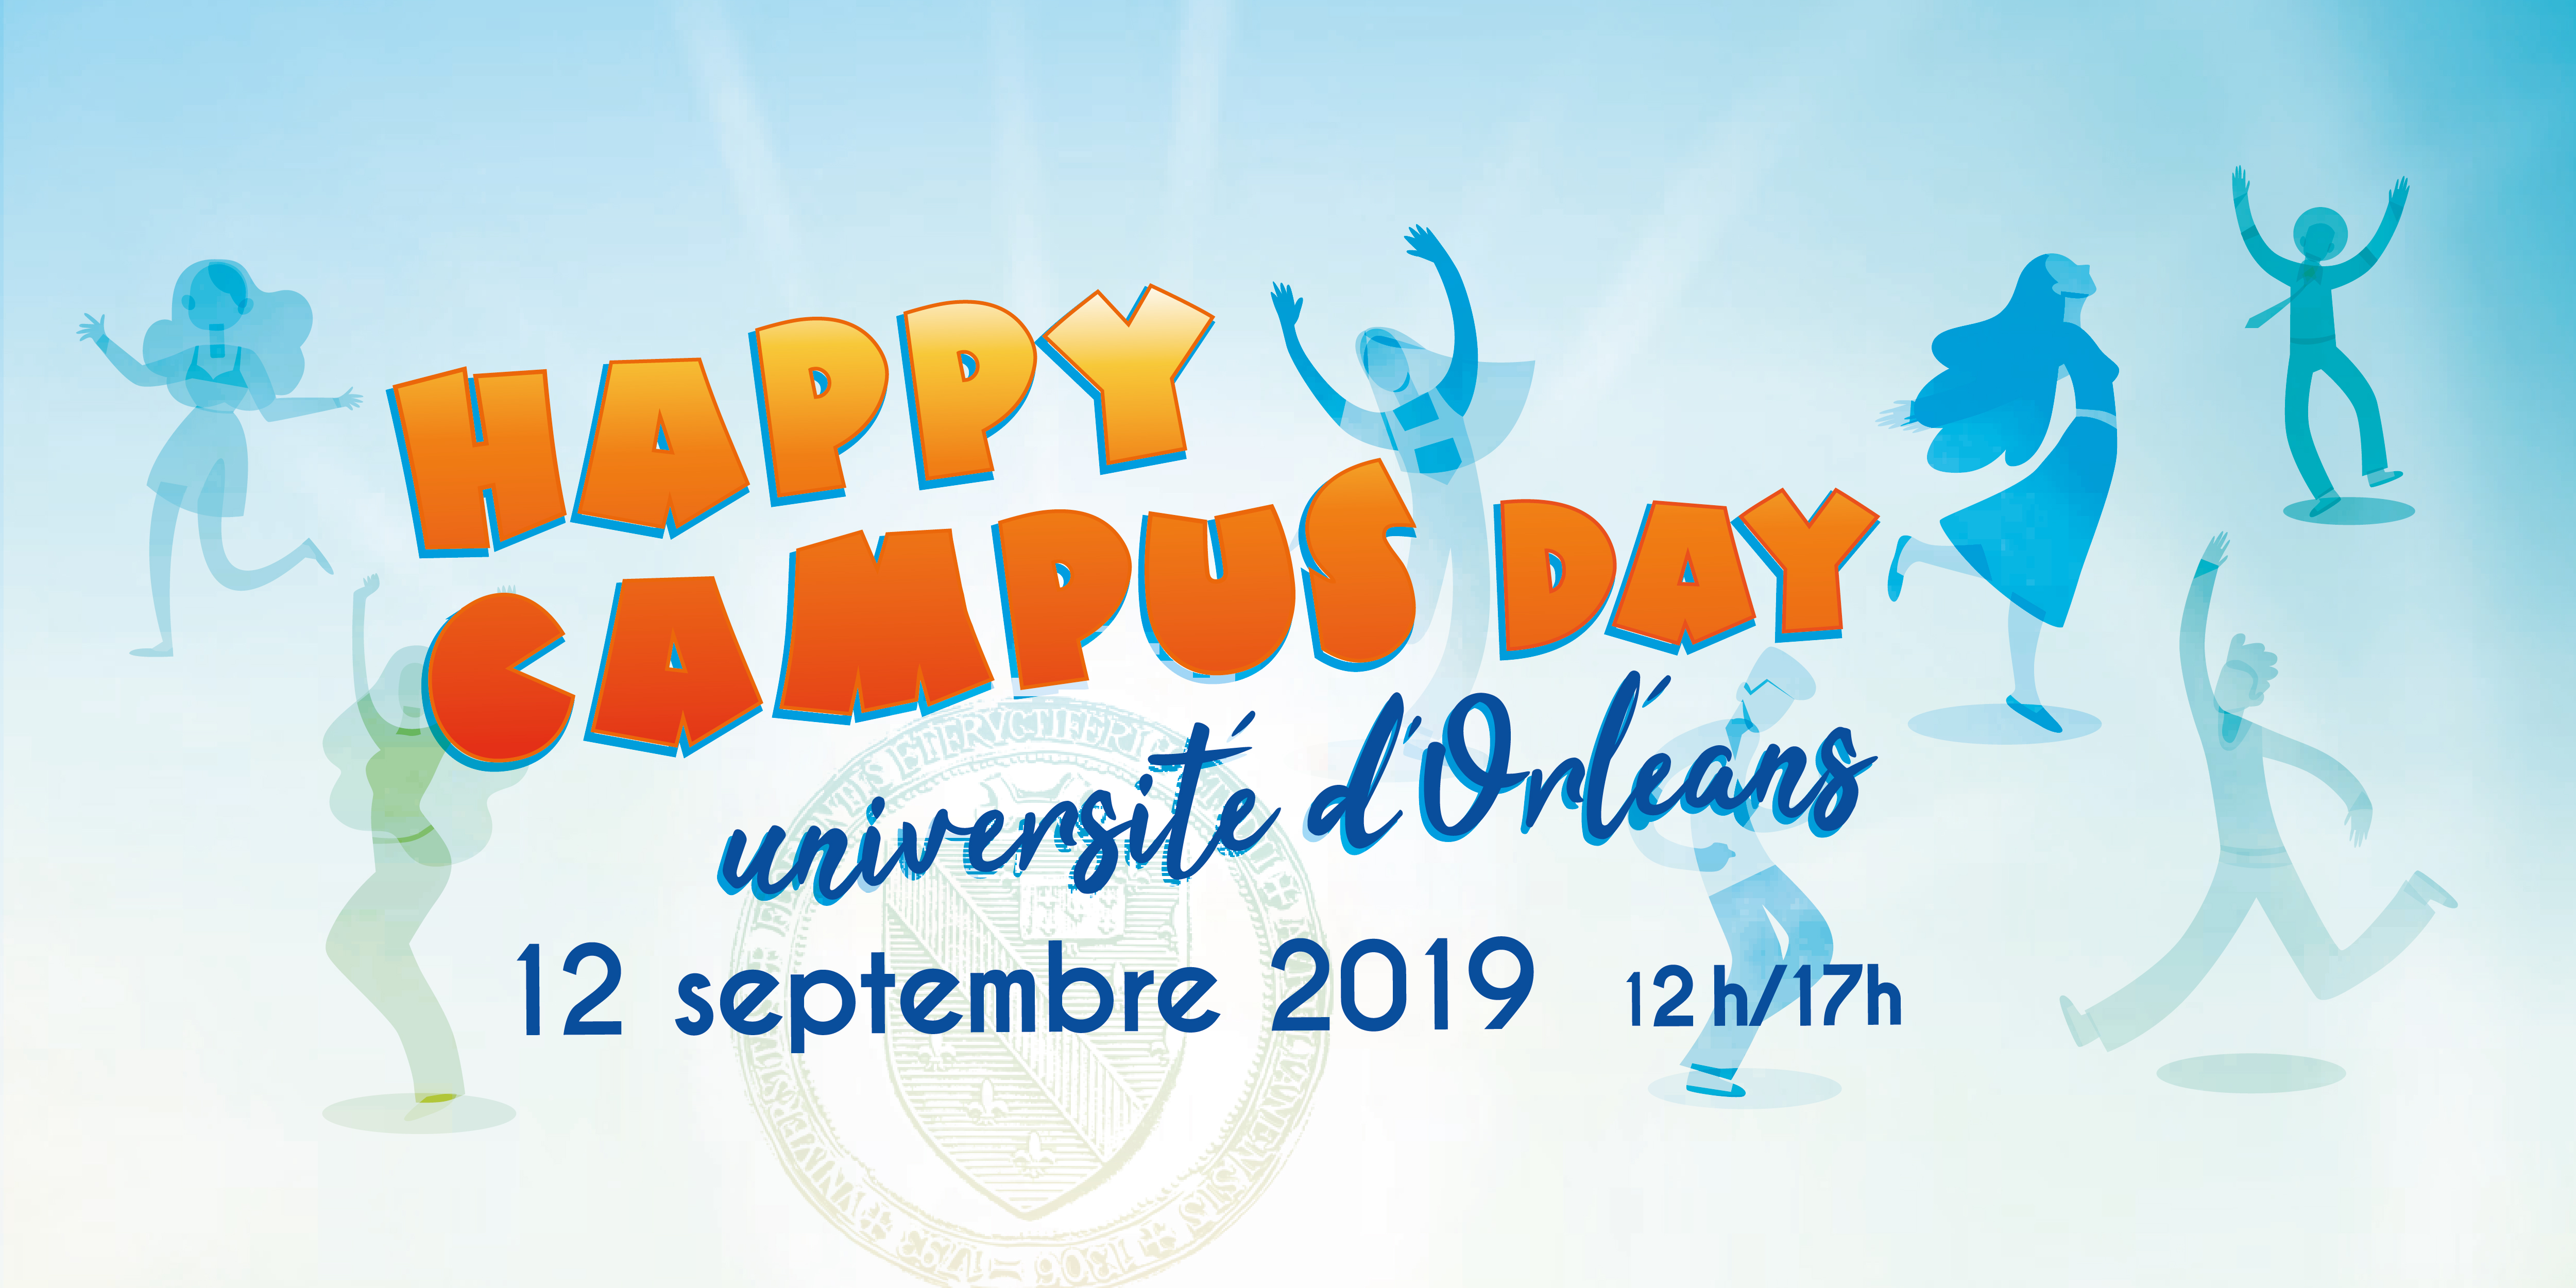 Visuel happy campus day orleans